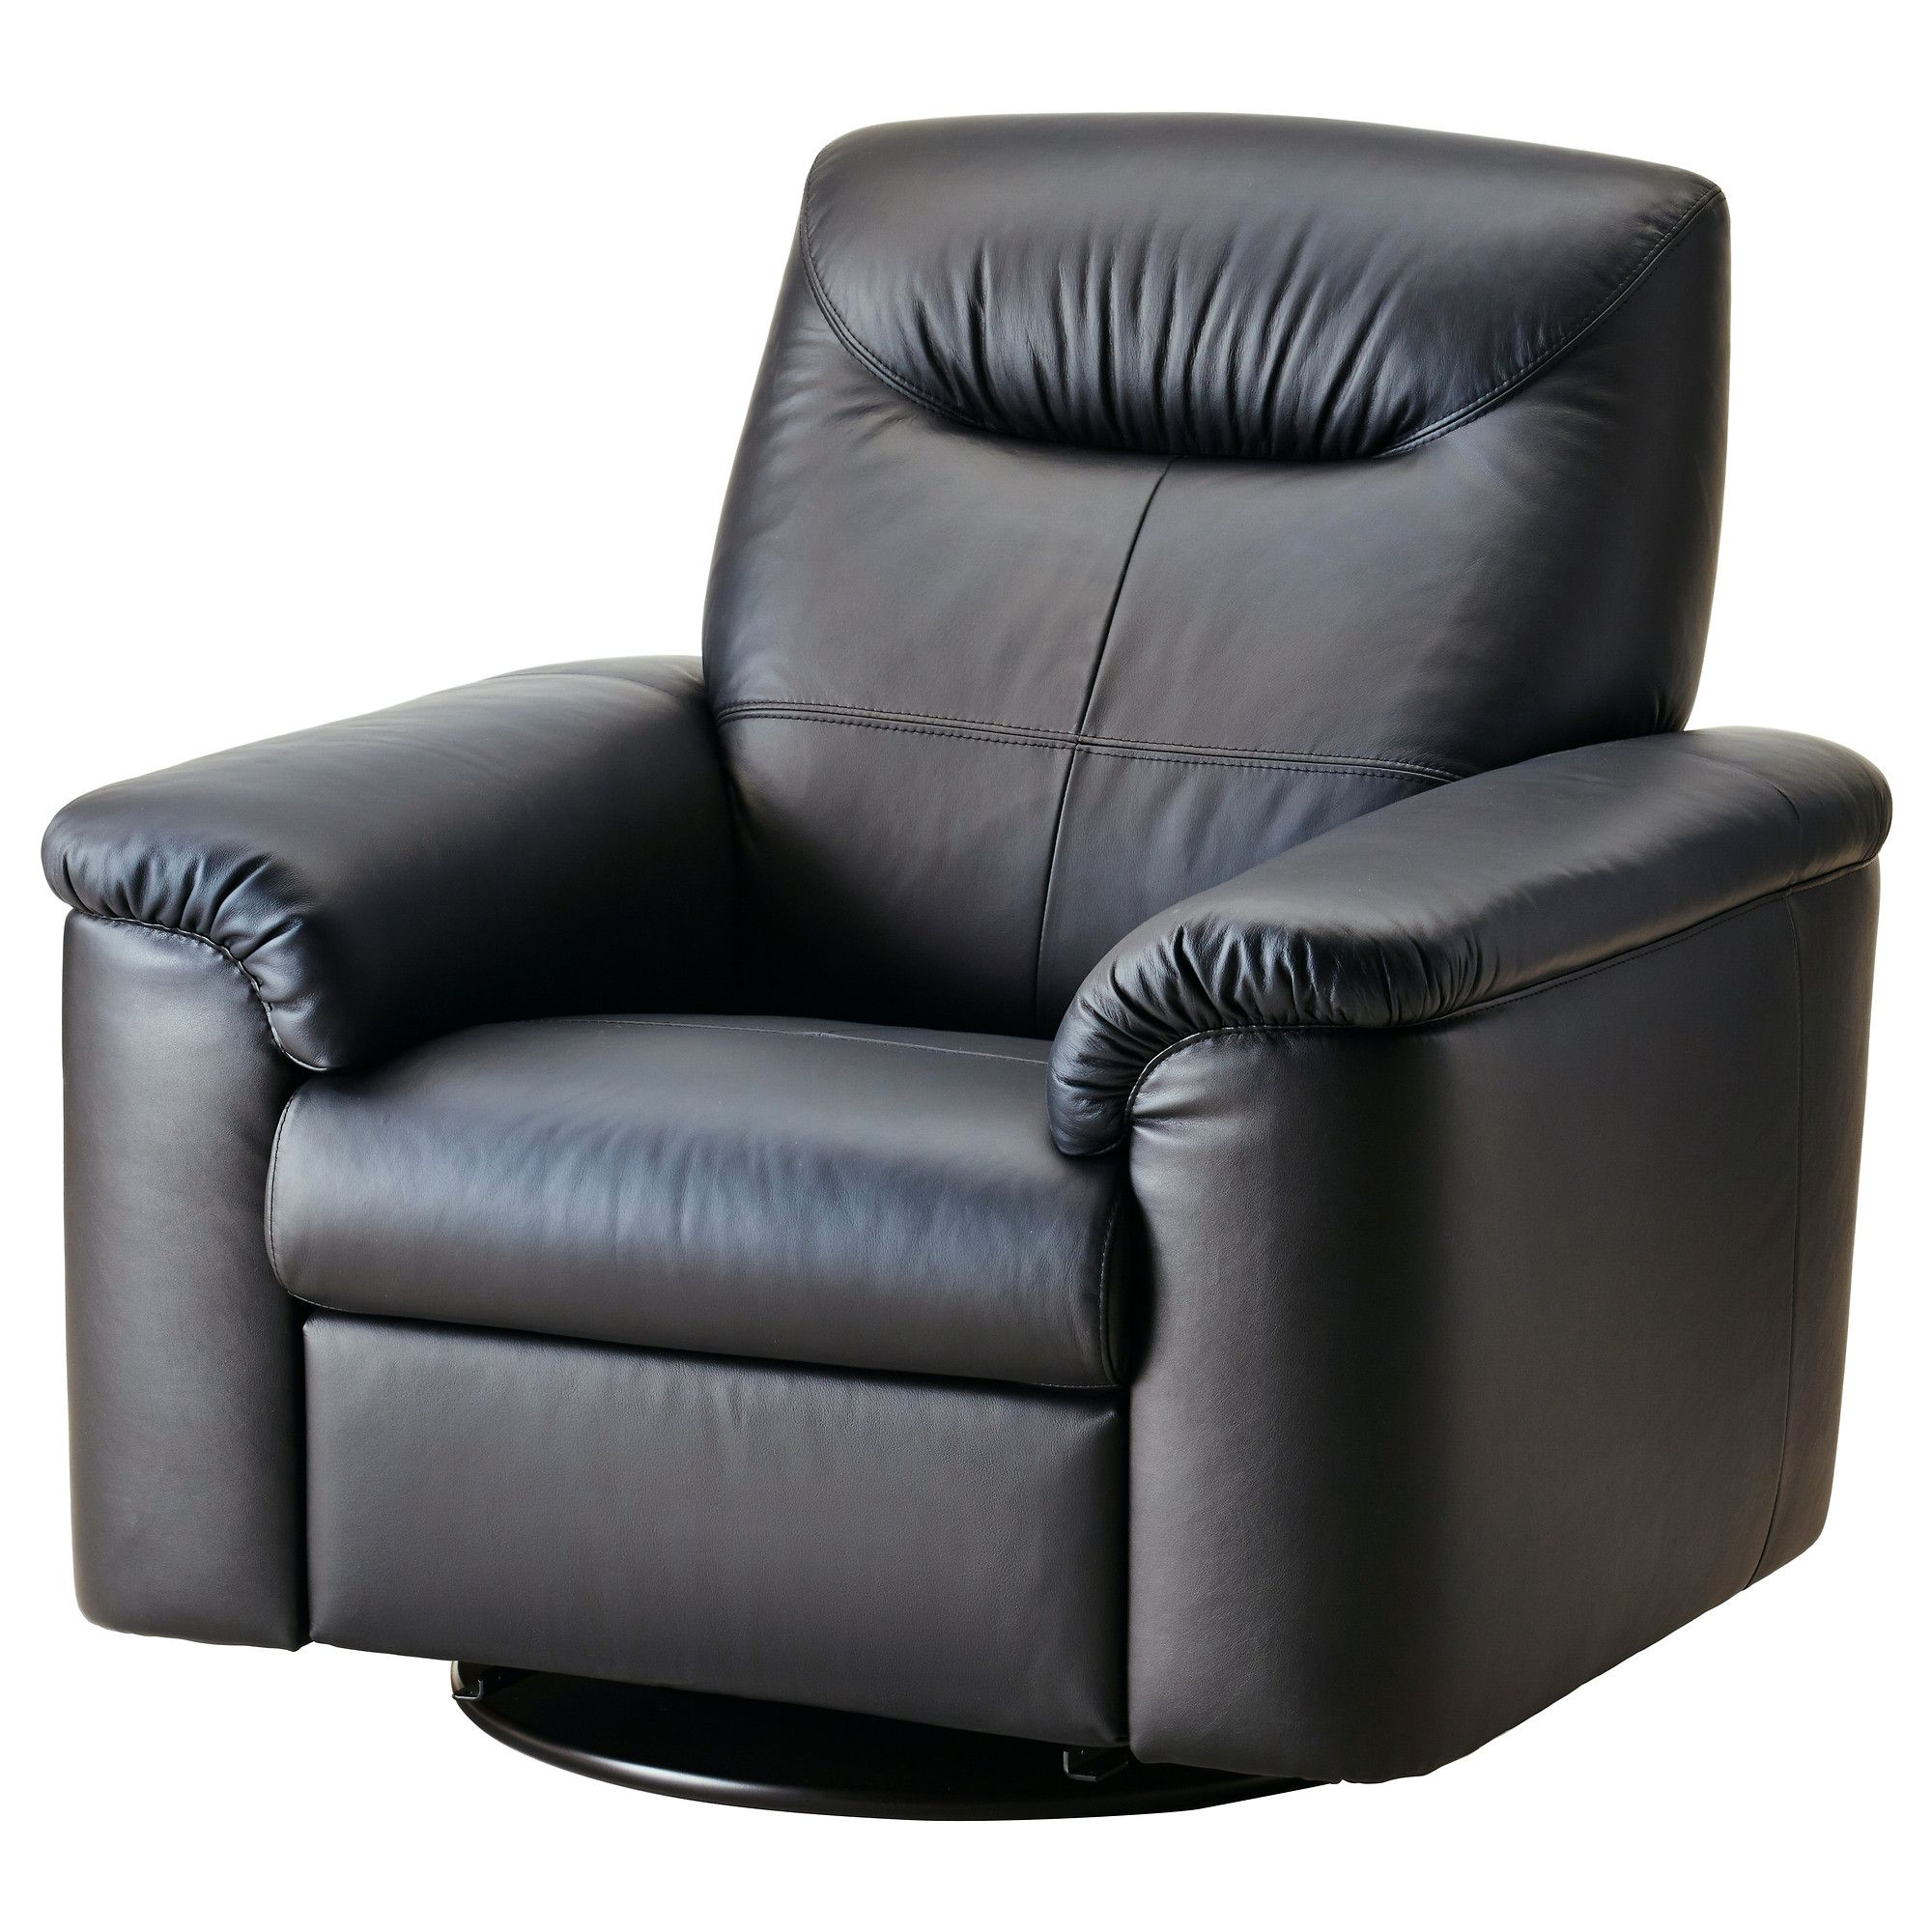 used size buy sale near swivel me sofa discount power burks small slipper s recliner on cheap recliners sleeper reclining furniture chair melbourne for of burke online costco full